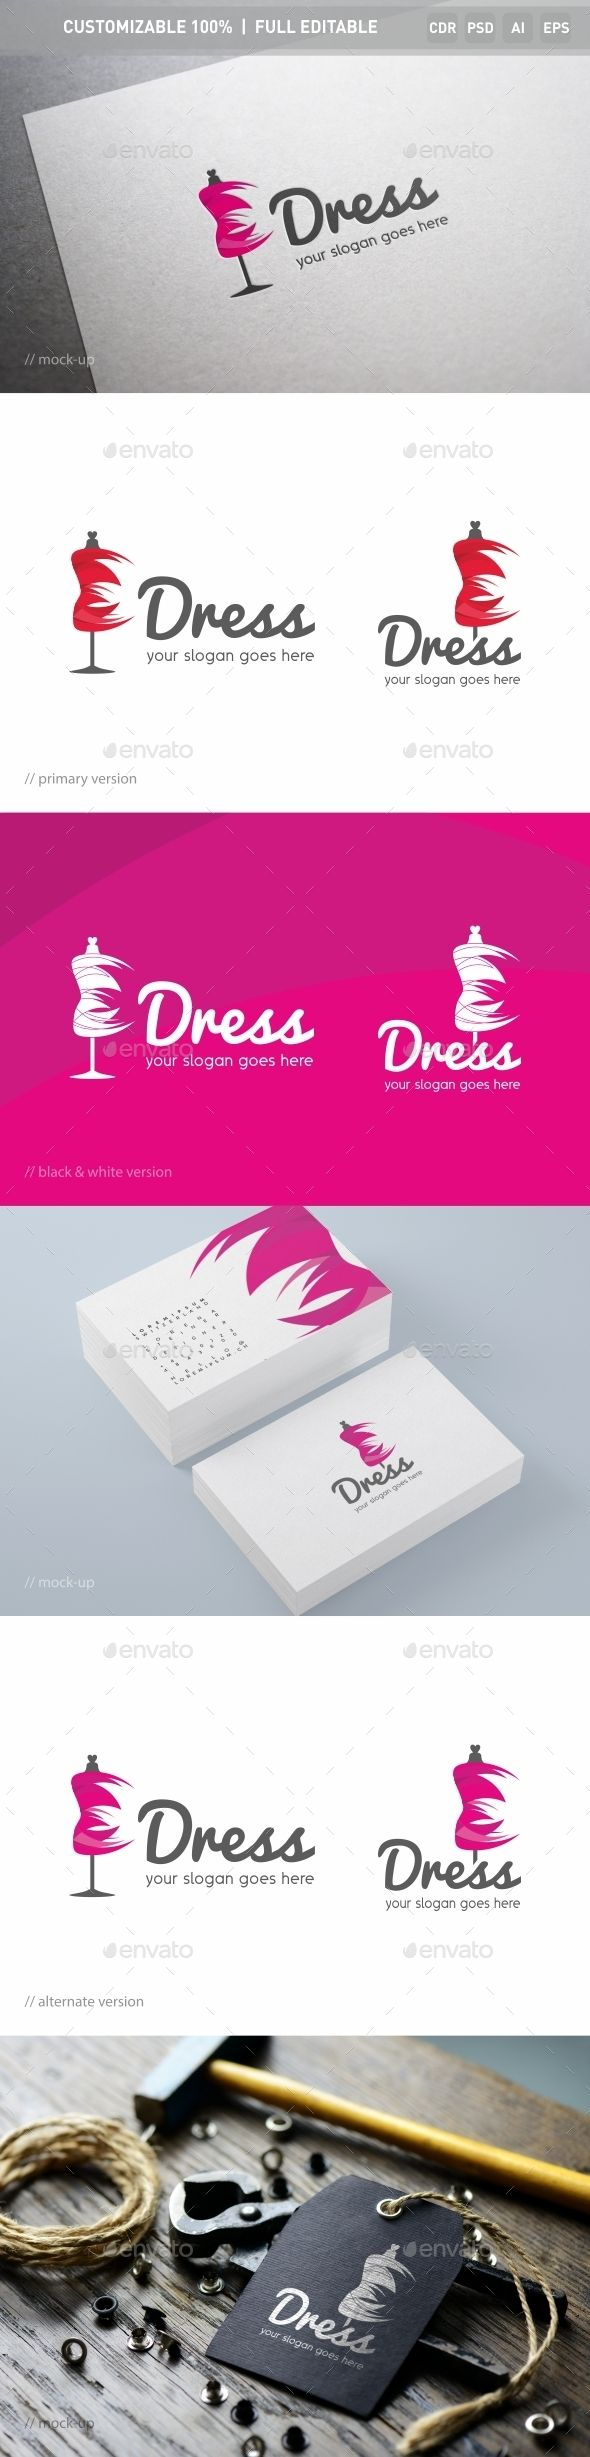 Dress Logo Template — Photoshop PSD #women #crafted • Download here → https://graphicriver.net/item/dress-logo-template/13944498?ref=pxcr